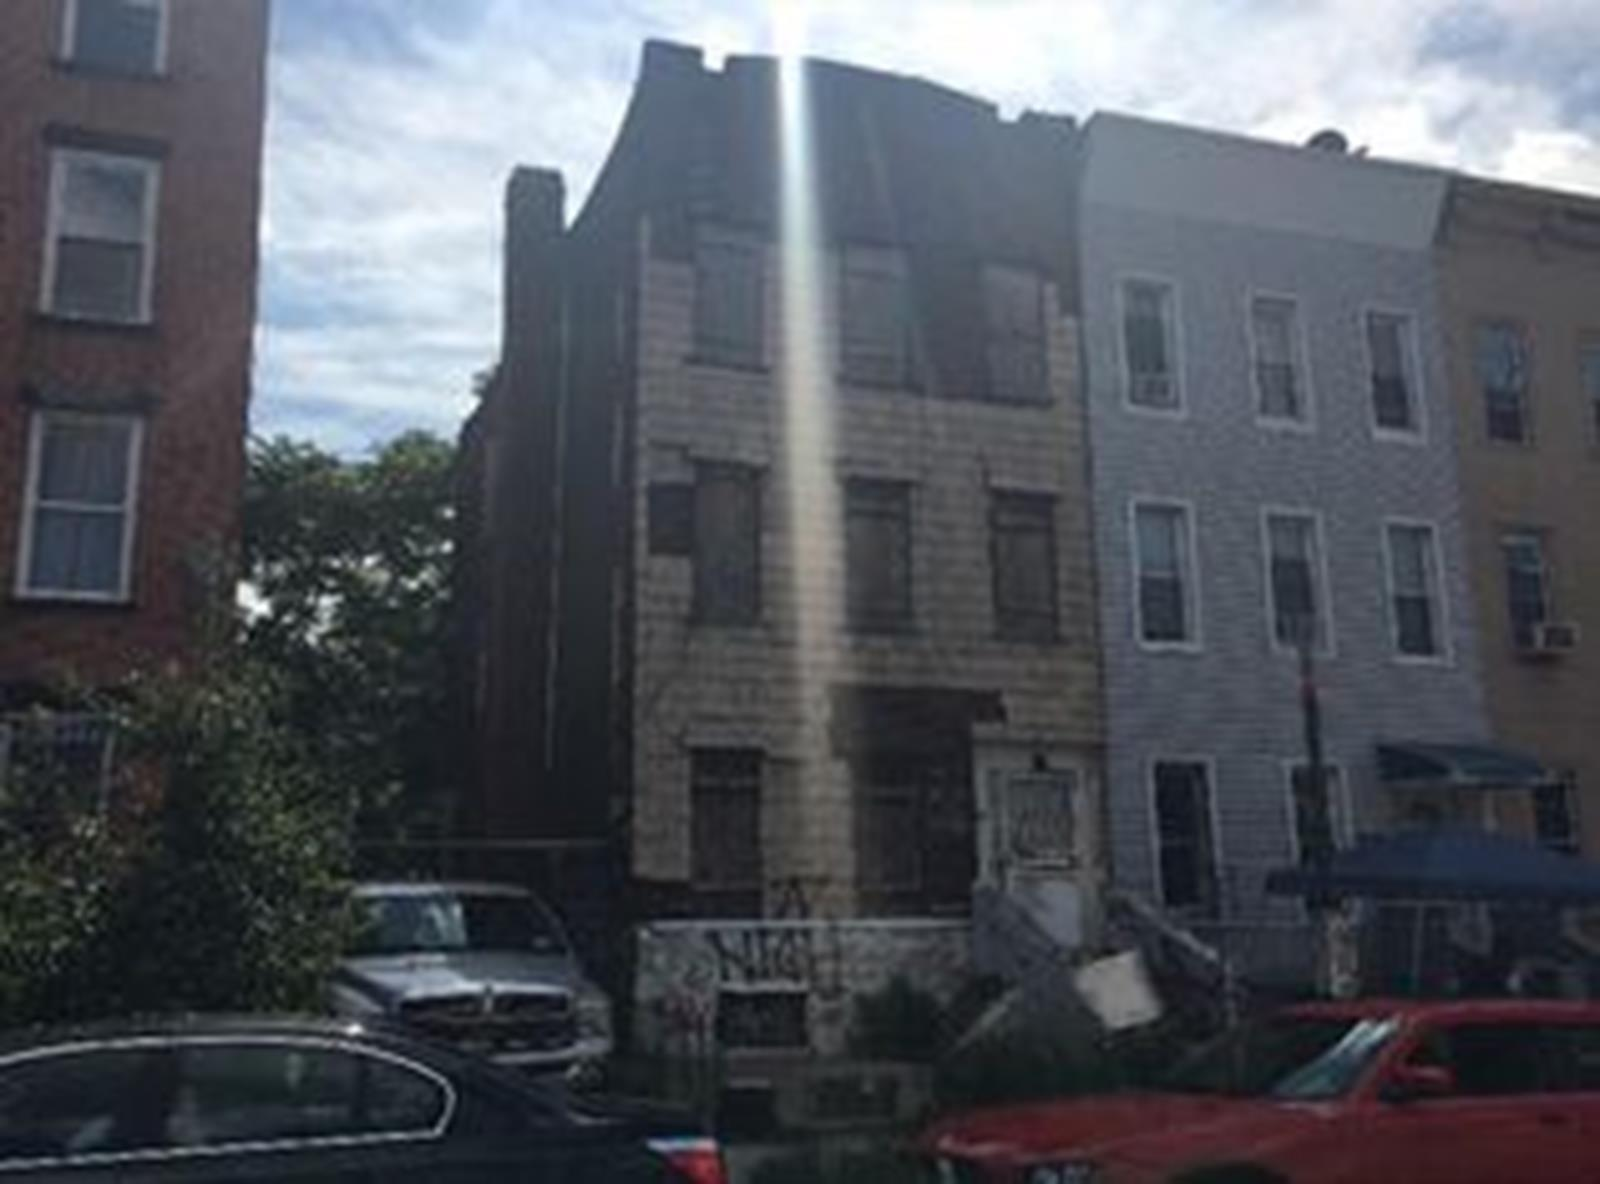 Commercial for Sale at 225 Hopkinson Avenue 225 Hopkinson Avenue Brooklyn, New York 11233 United States